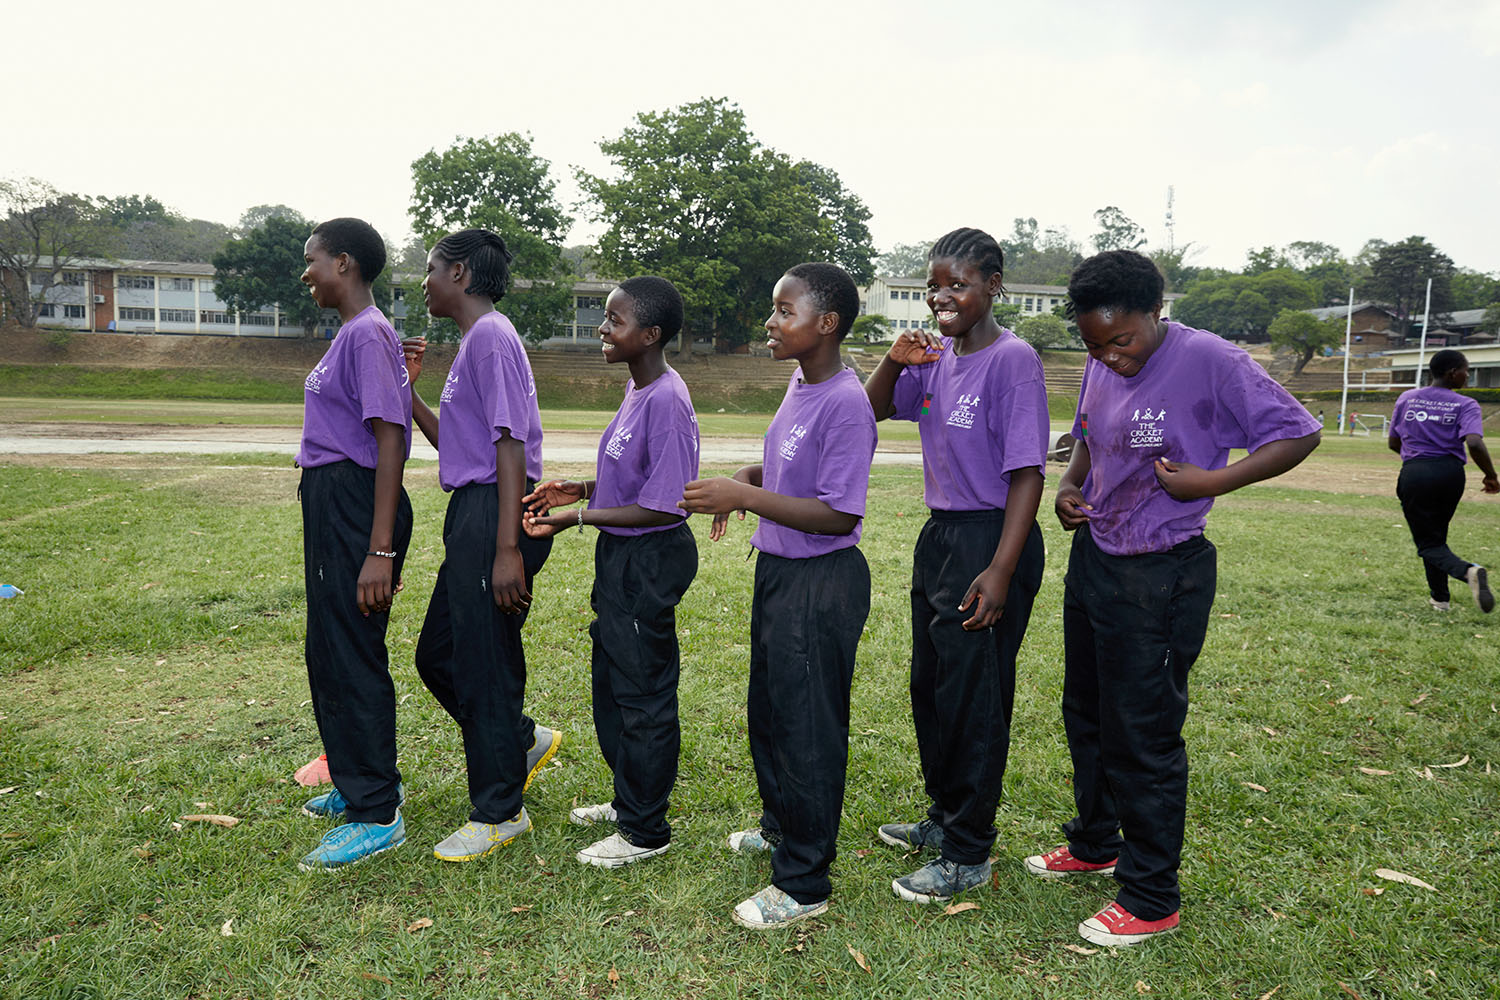 Girls line up for their turn during training